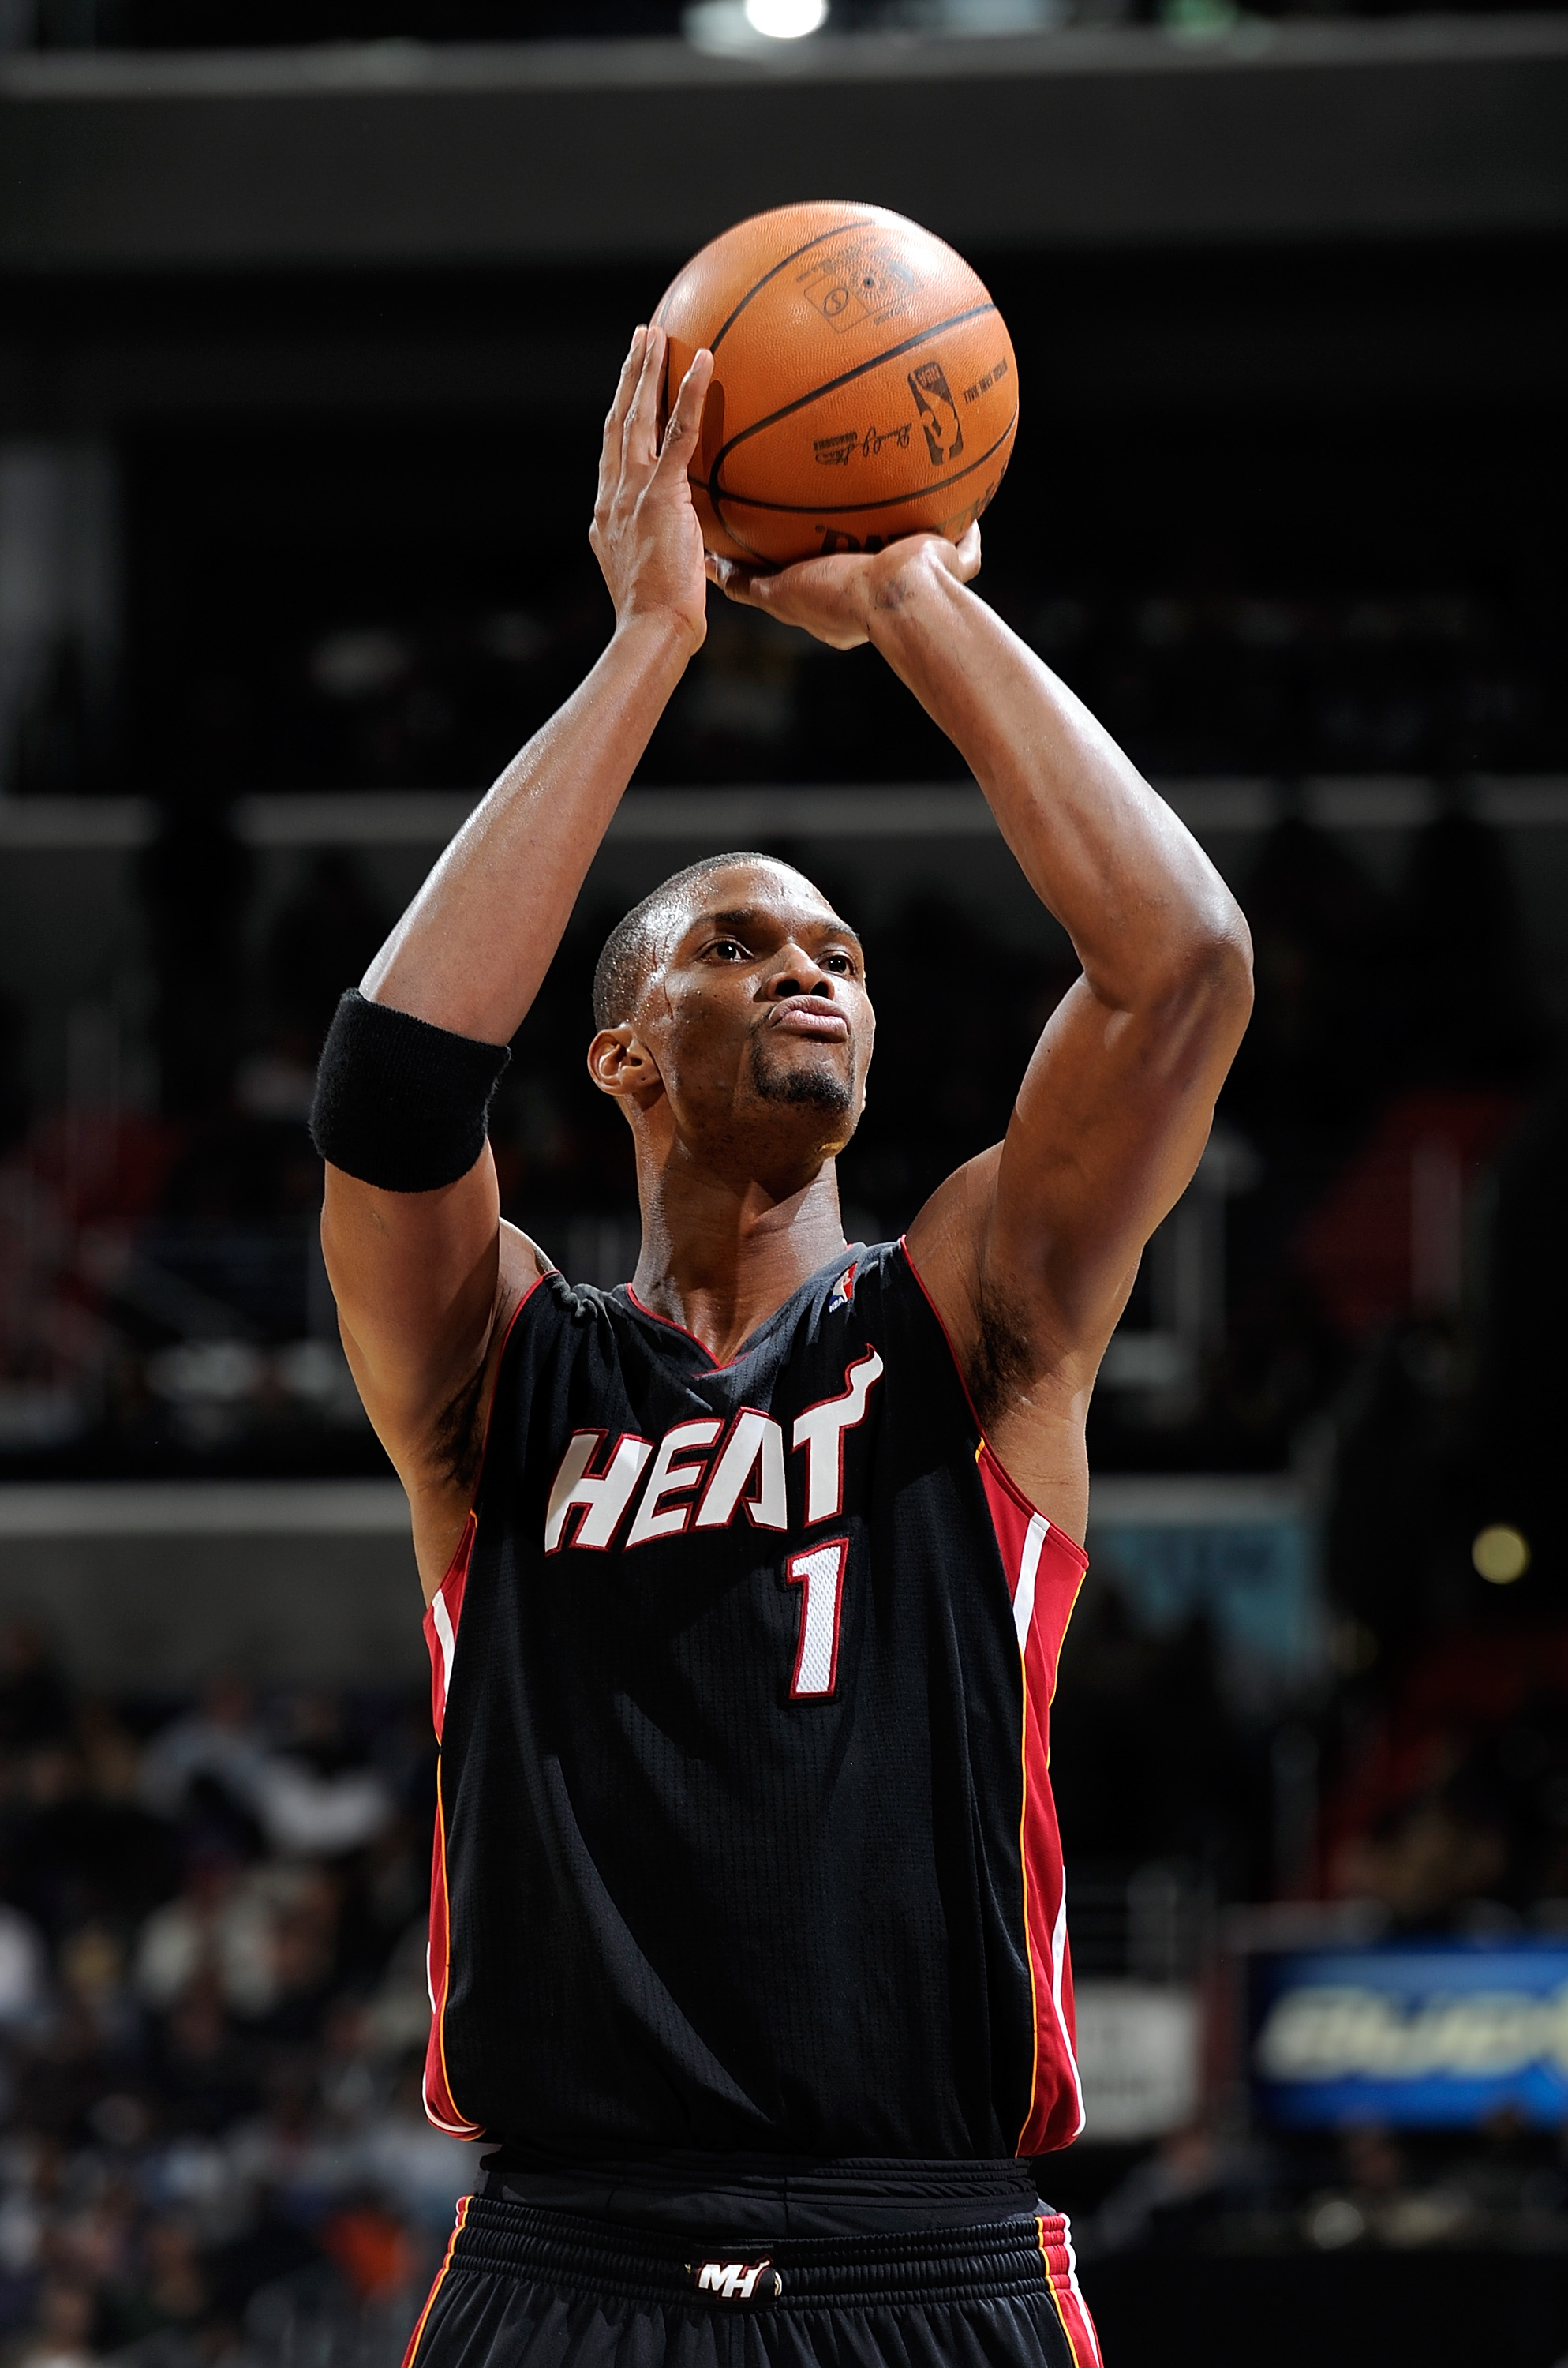 WASHINGTON, DC - DECEMBER 18:  Chris Bosh #1 of the Miami Heat shoots a free throw against the Washington Wizards at the Verizon Center on December 18, 2010 in Washington, DC. NOTE TO USER: User expressly acknowledges and agrees that, by downloading and o